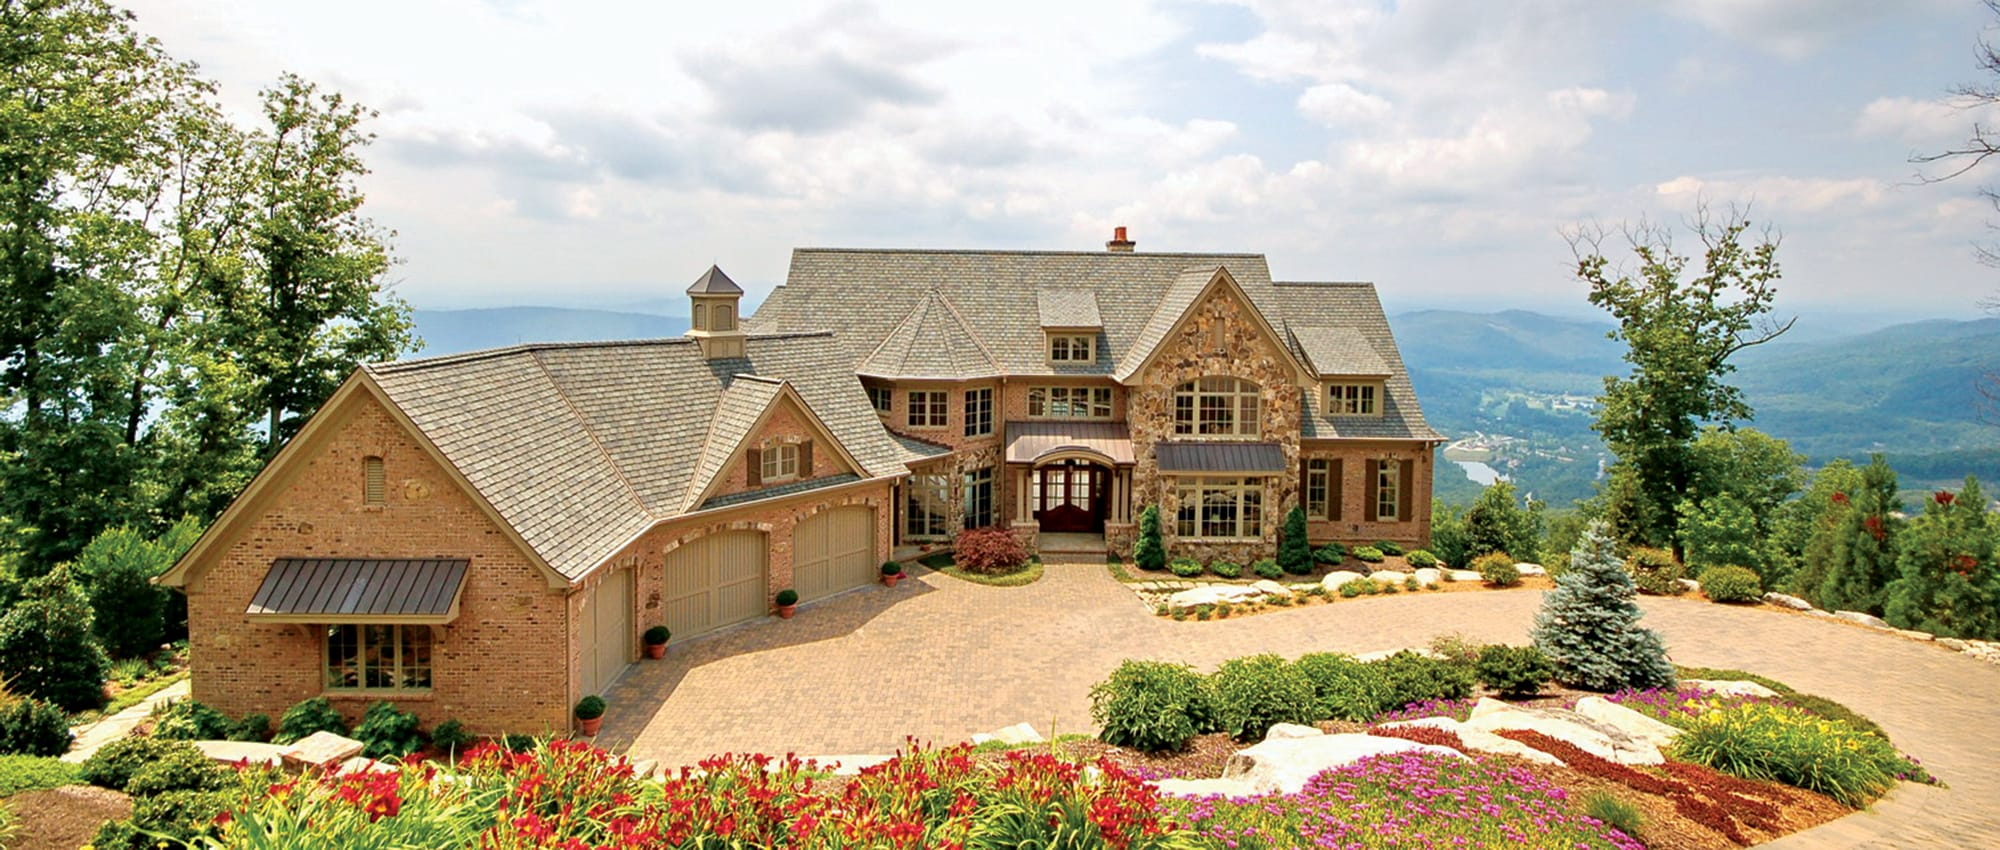 The Cliffs Valley Real Estate Luxury Homes For Sale